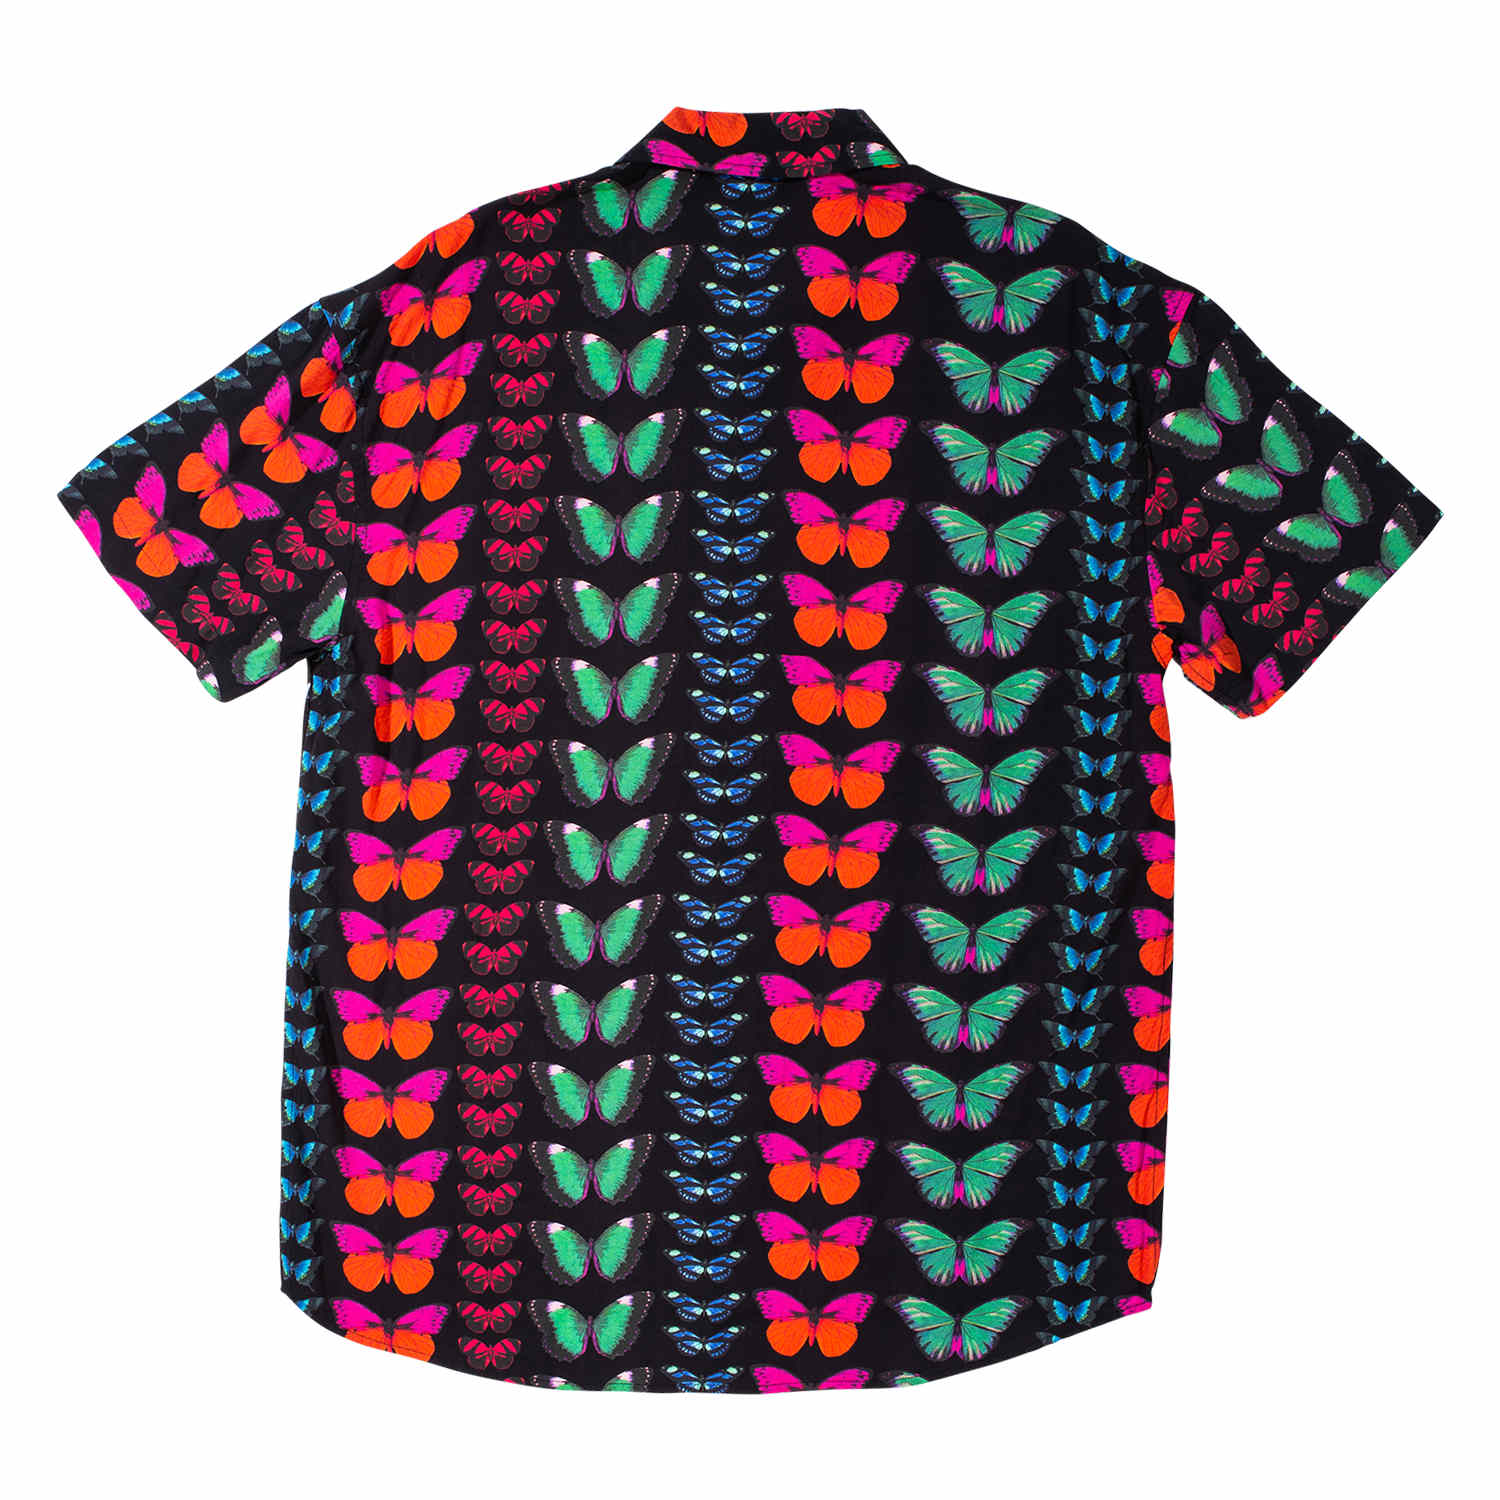 【PLEASURES/プレジャーズ】BUTTERFLY SHORT SLEEVE BUTTON UP 半袖シャツ / BLACK